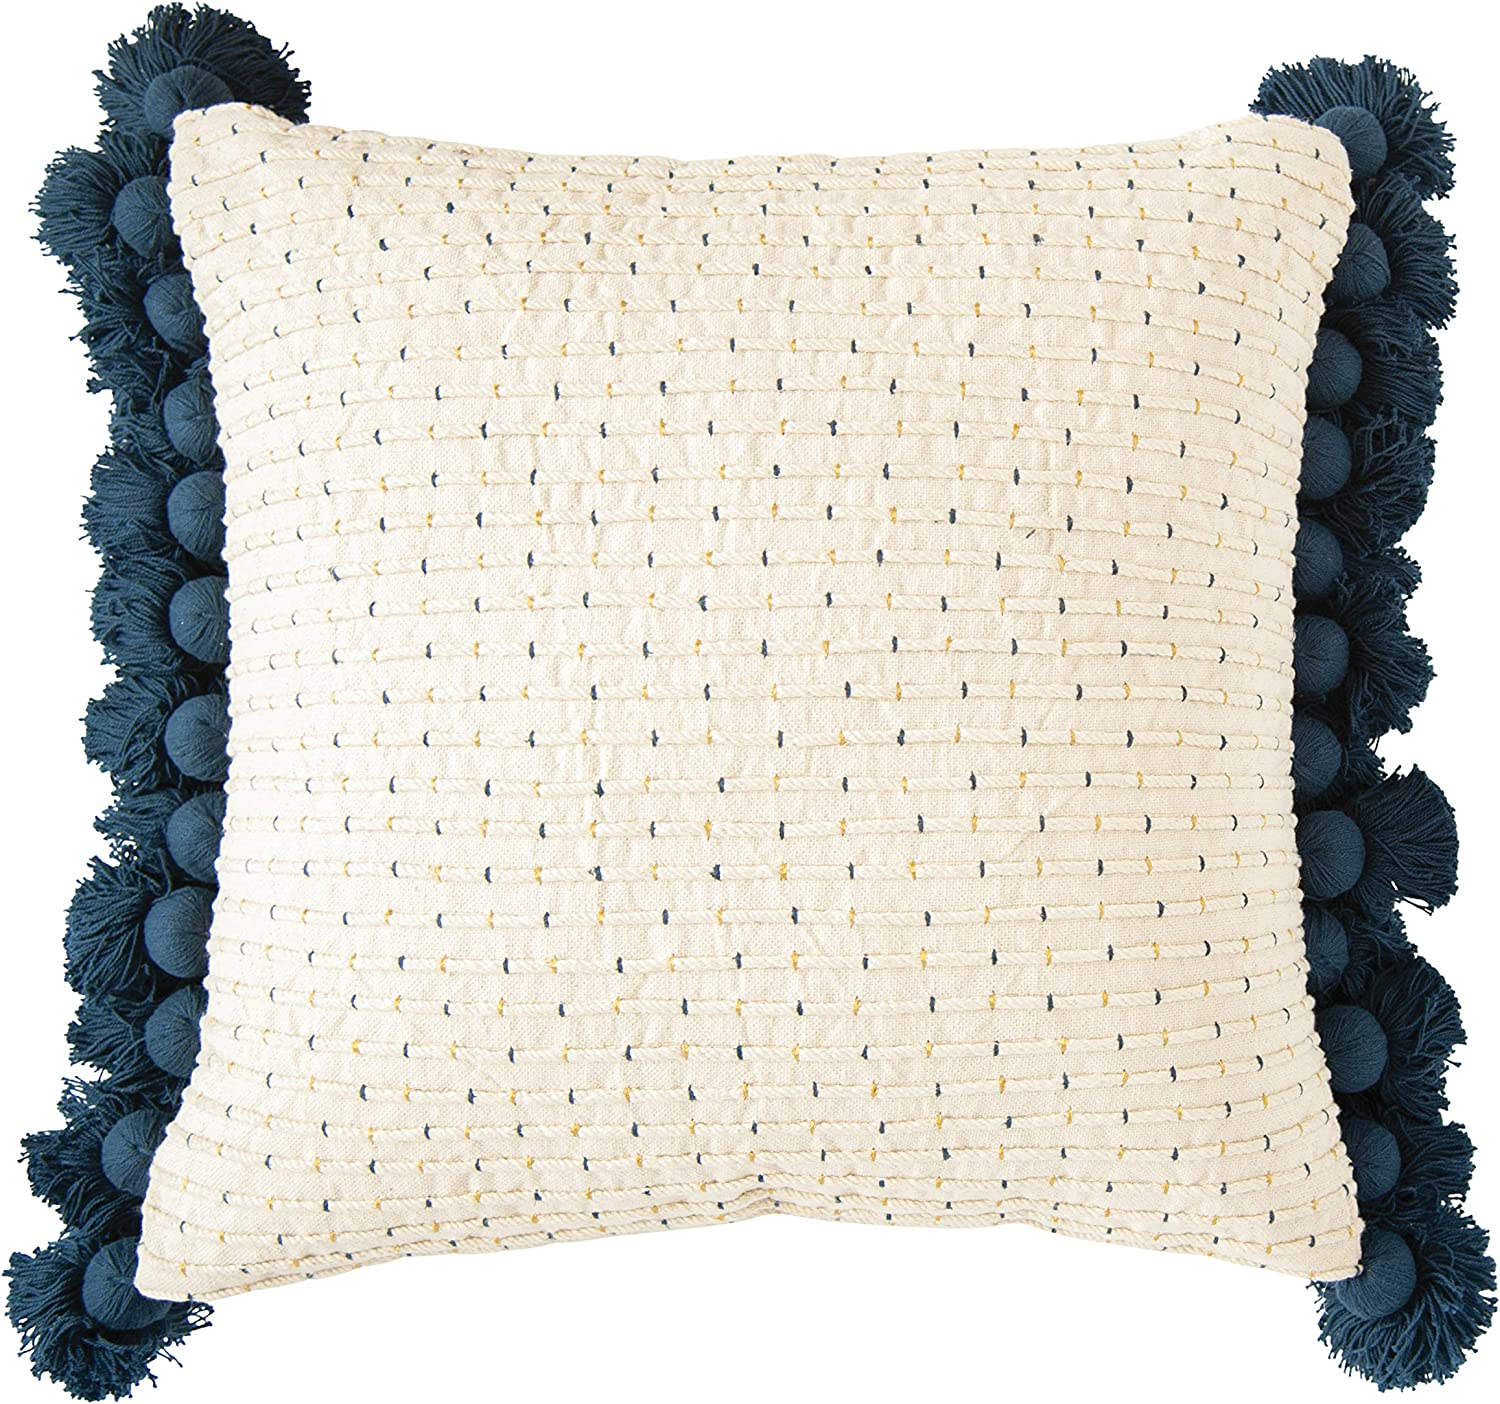 Pillow Insert included stock Silver Grey /& Navy Hand Embroidered Baby Pillowcase with Navy Lace Trim Embroidery Bassinet Pillow